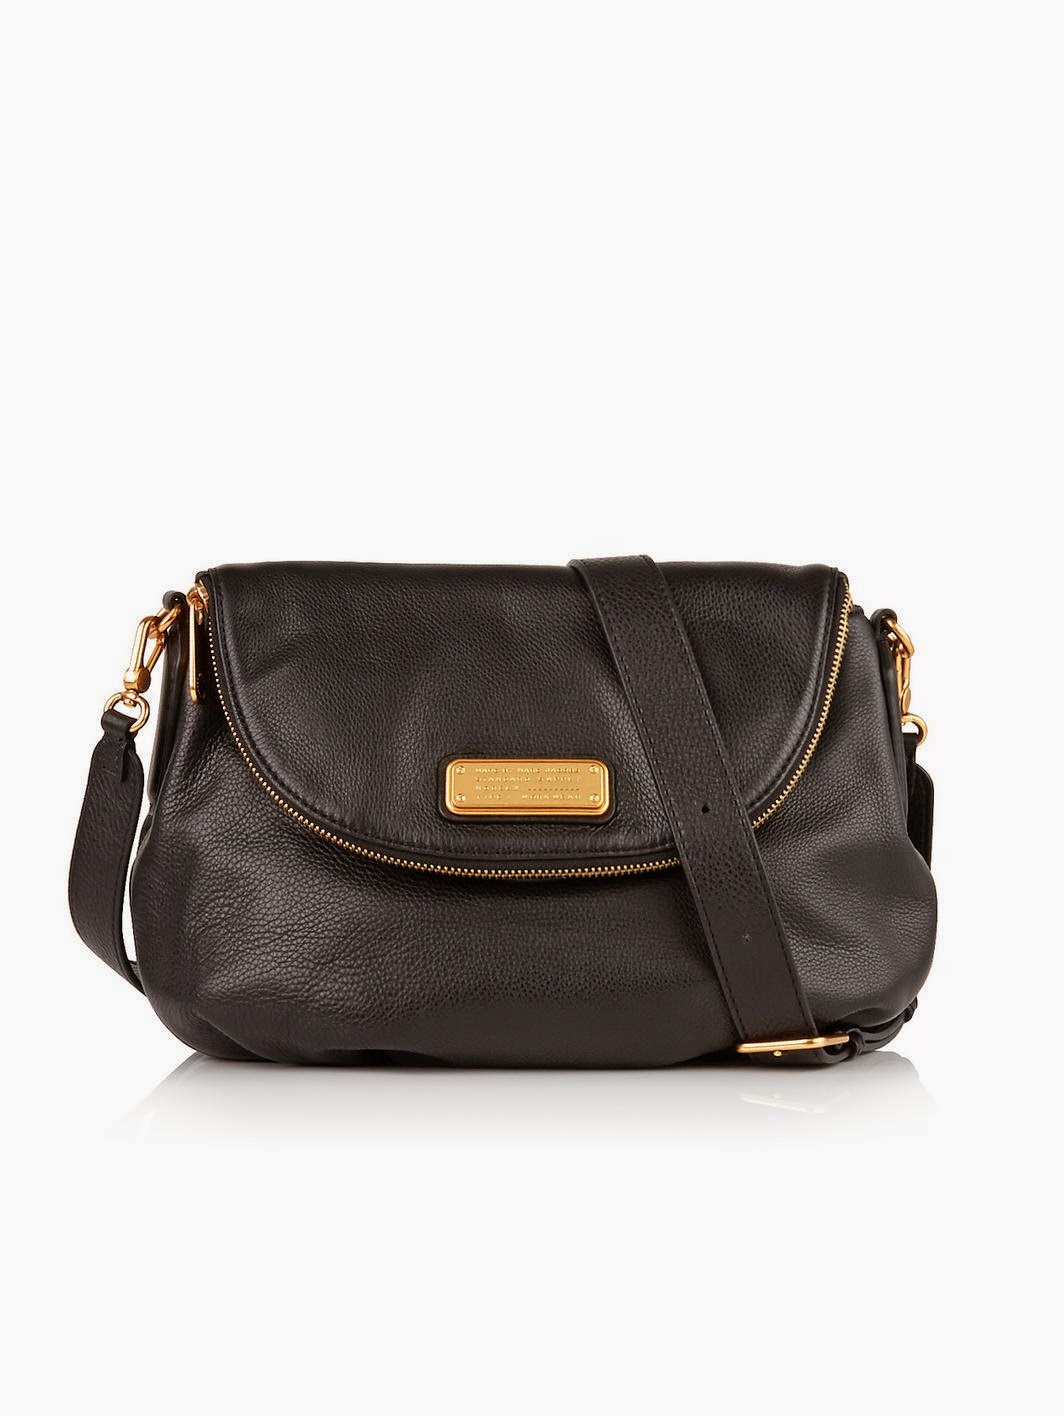 http://www.veryexclusive.co.uk/marc-by-marc-jacobs-natasha-new-q-cross-body-bag-black/1458767052.prd